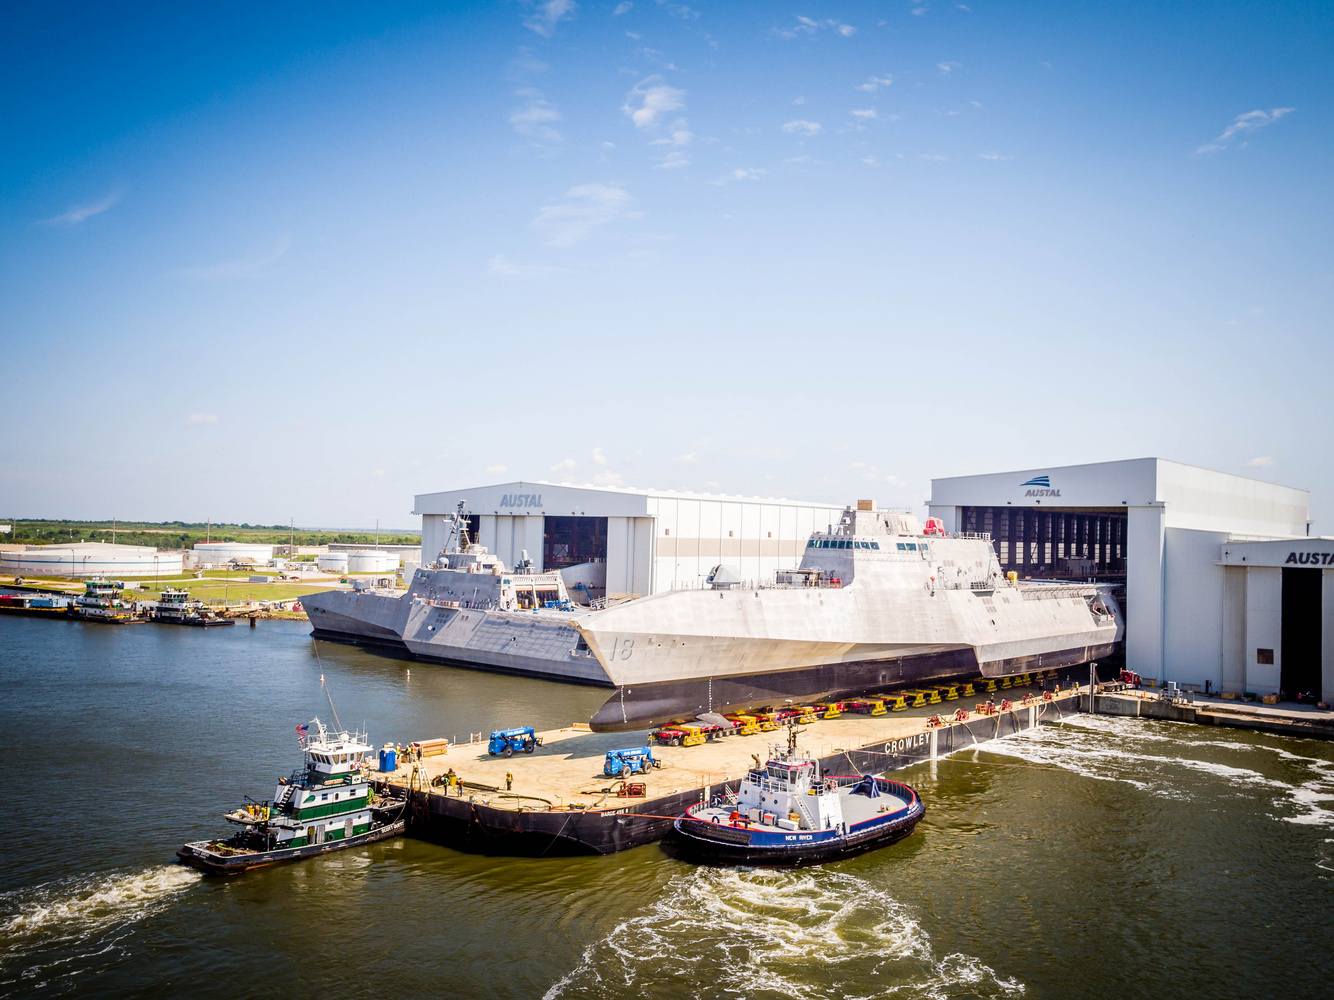 LCS Ship Load Out by Tony Broussard